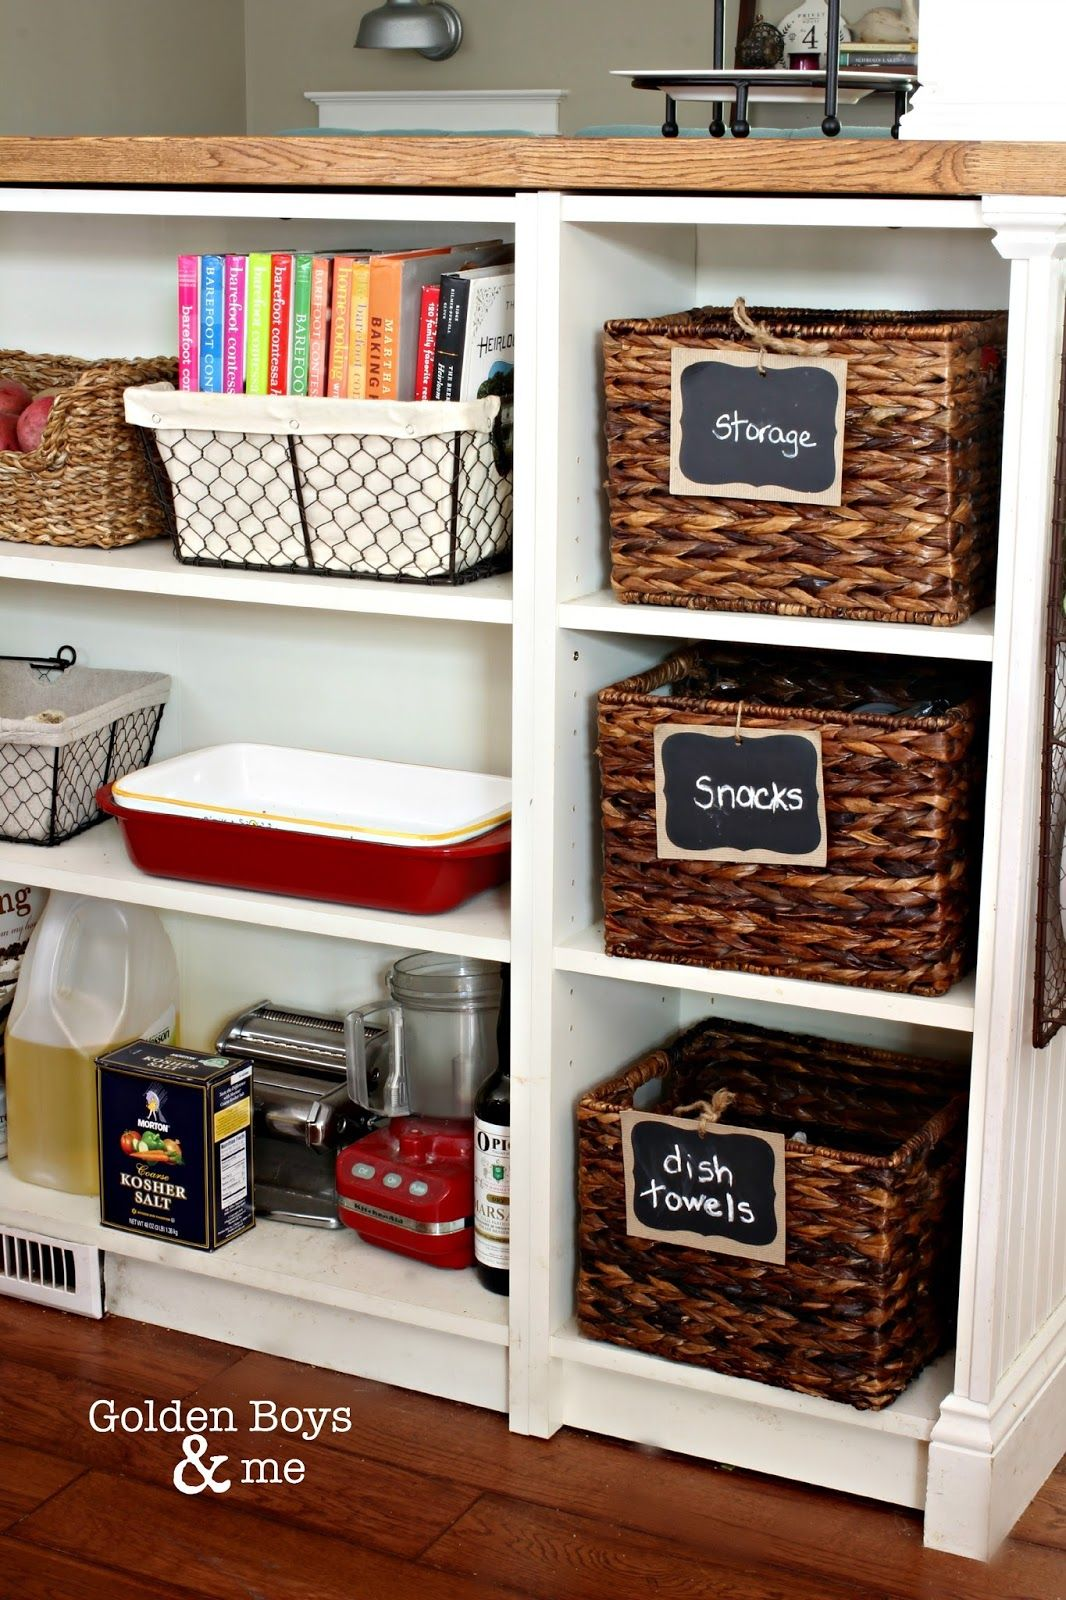 Golden Boys and Me | Cookbook storage, Wire basket and Storage